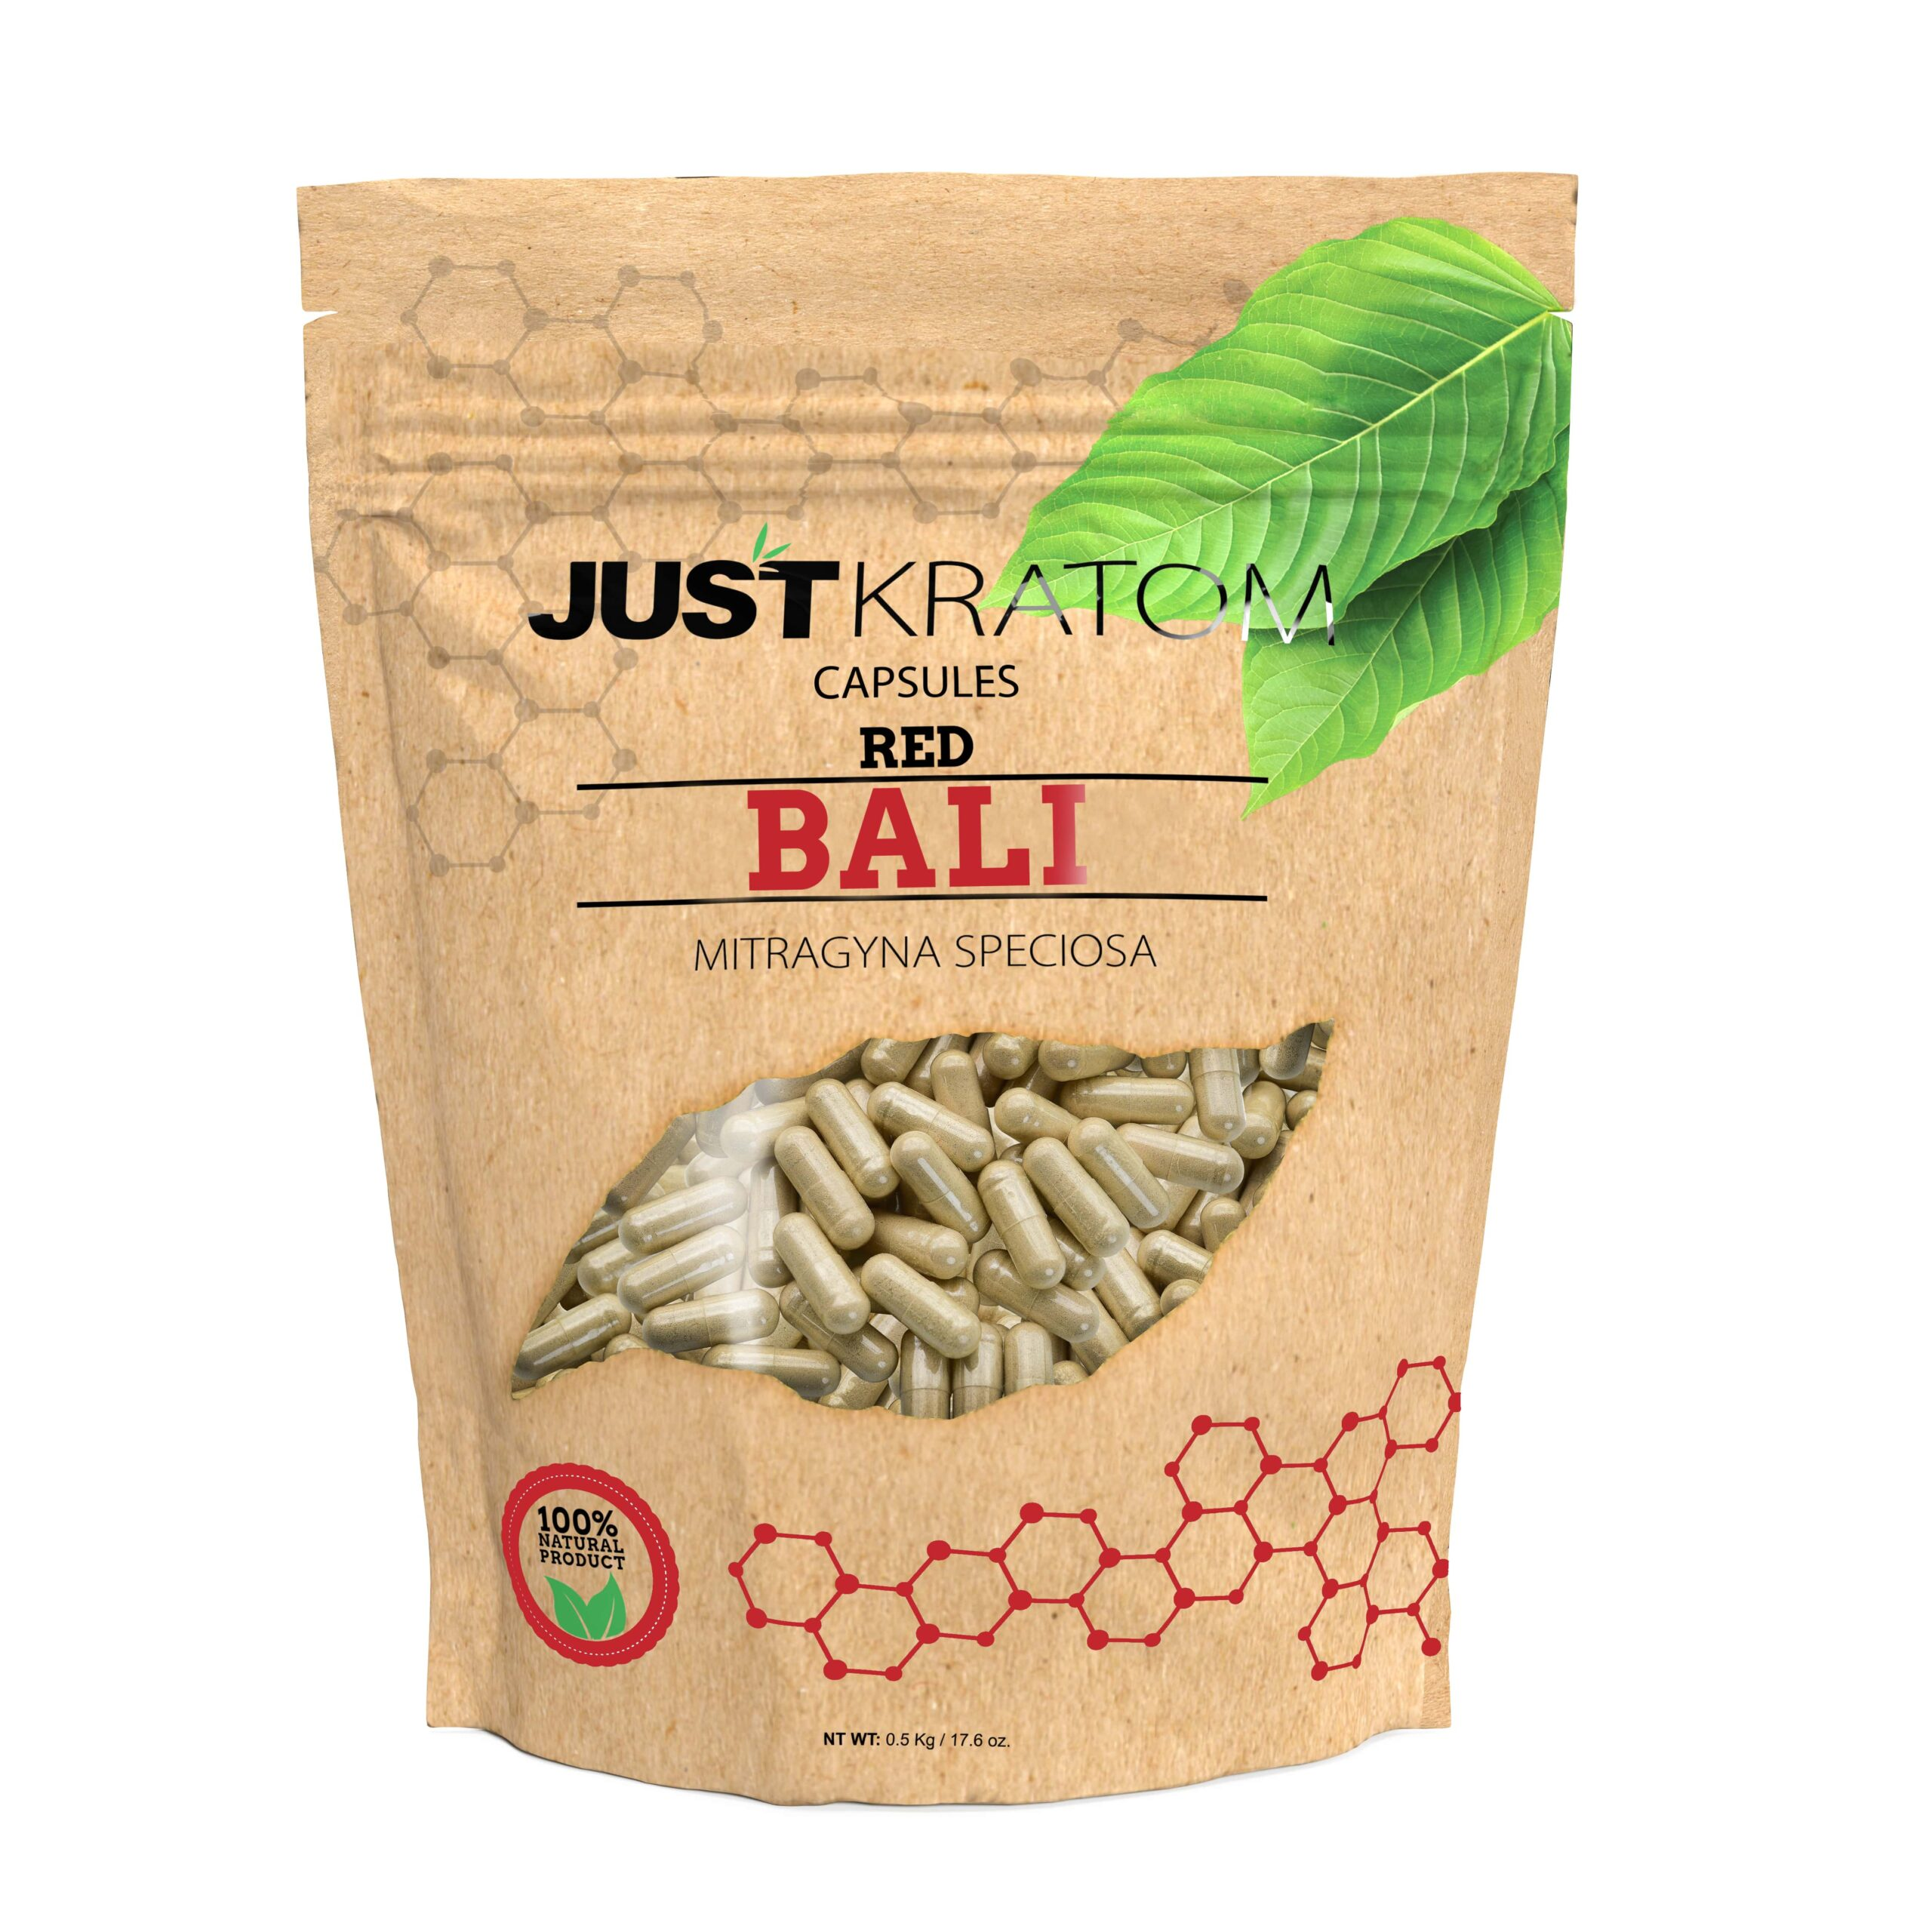 Where To Buy Kratom Capsules Online